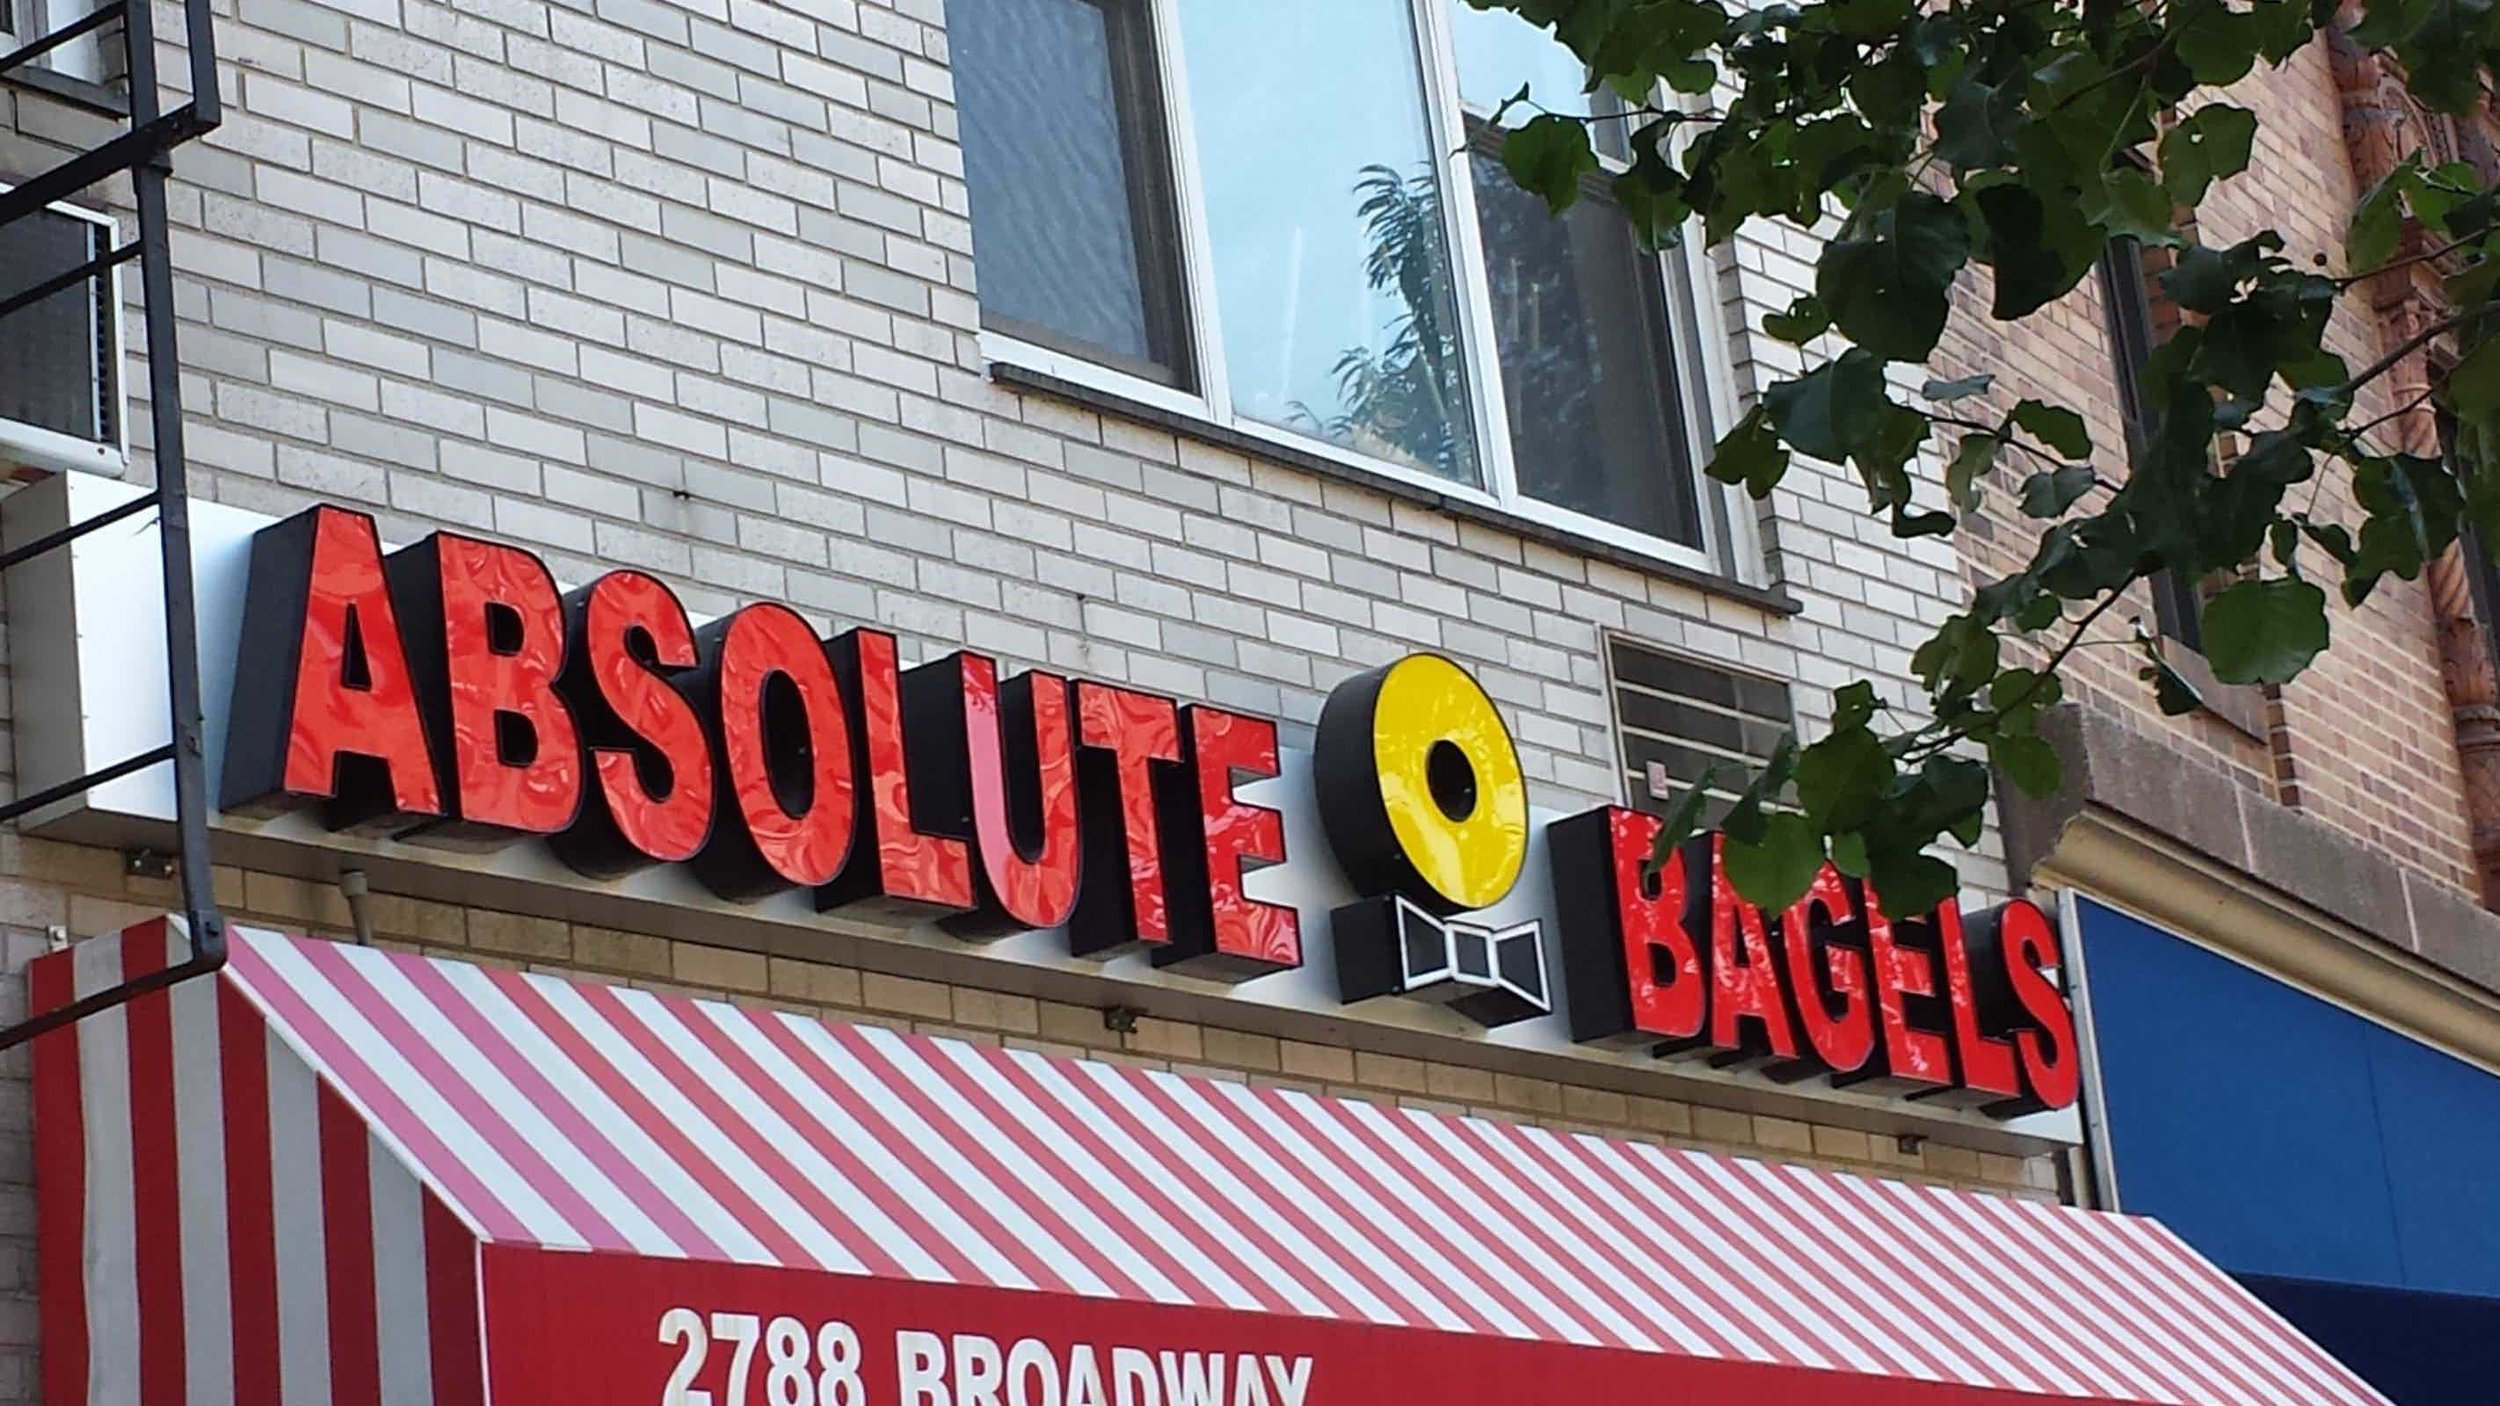 Image courtesy of Absolute Bagels